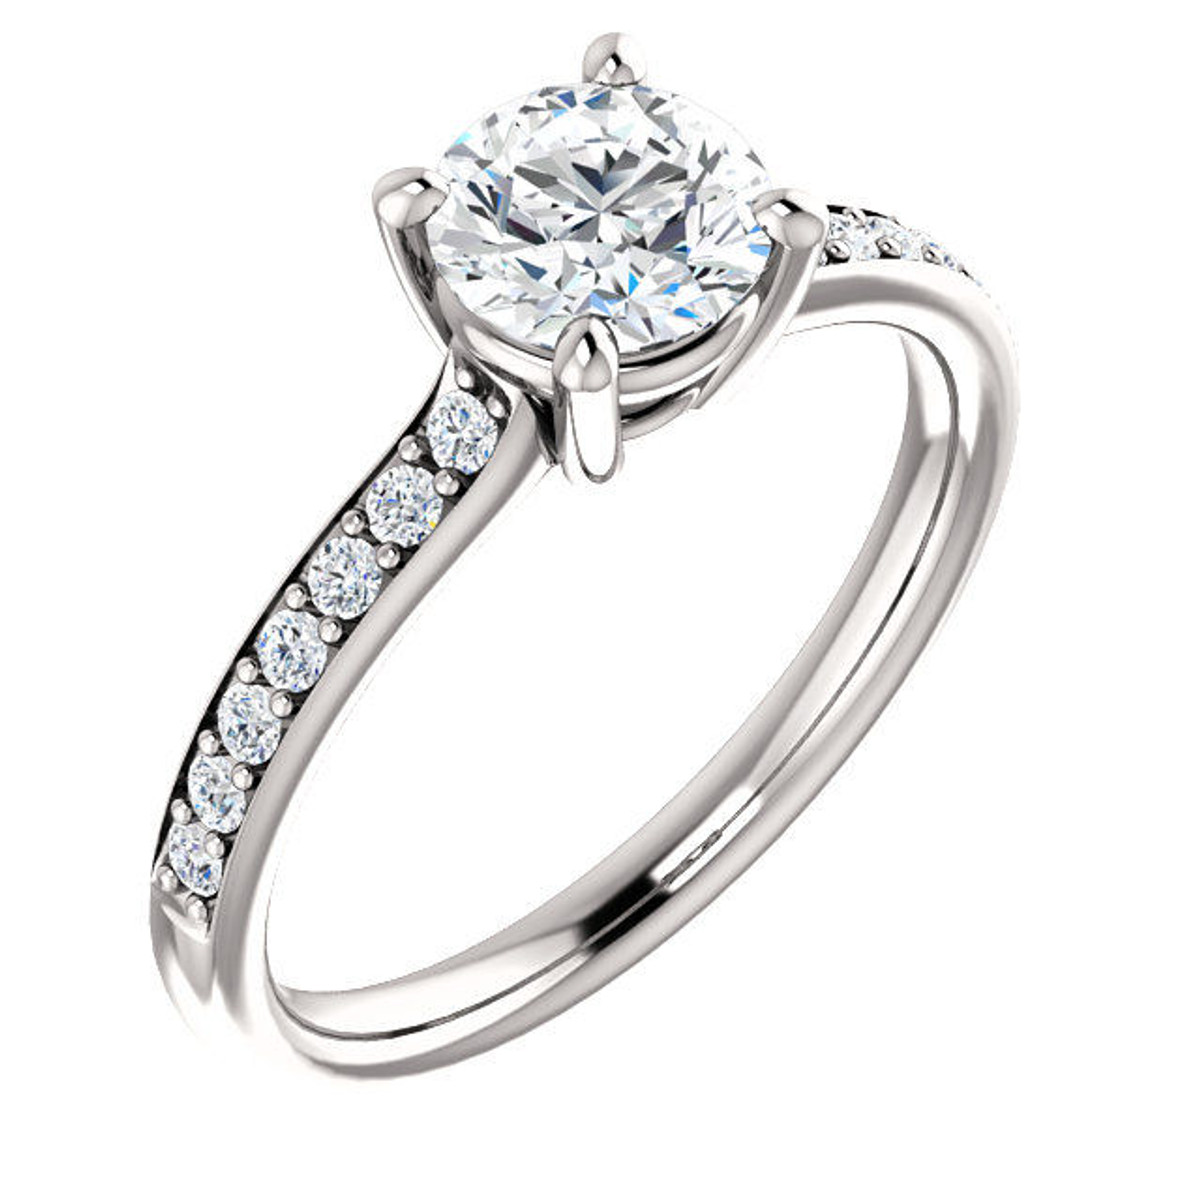 14Kt White Gold Classic Diamond Engagement Ring